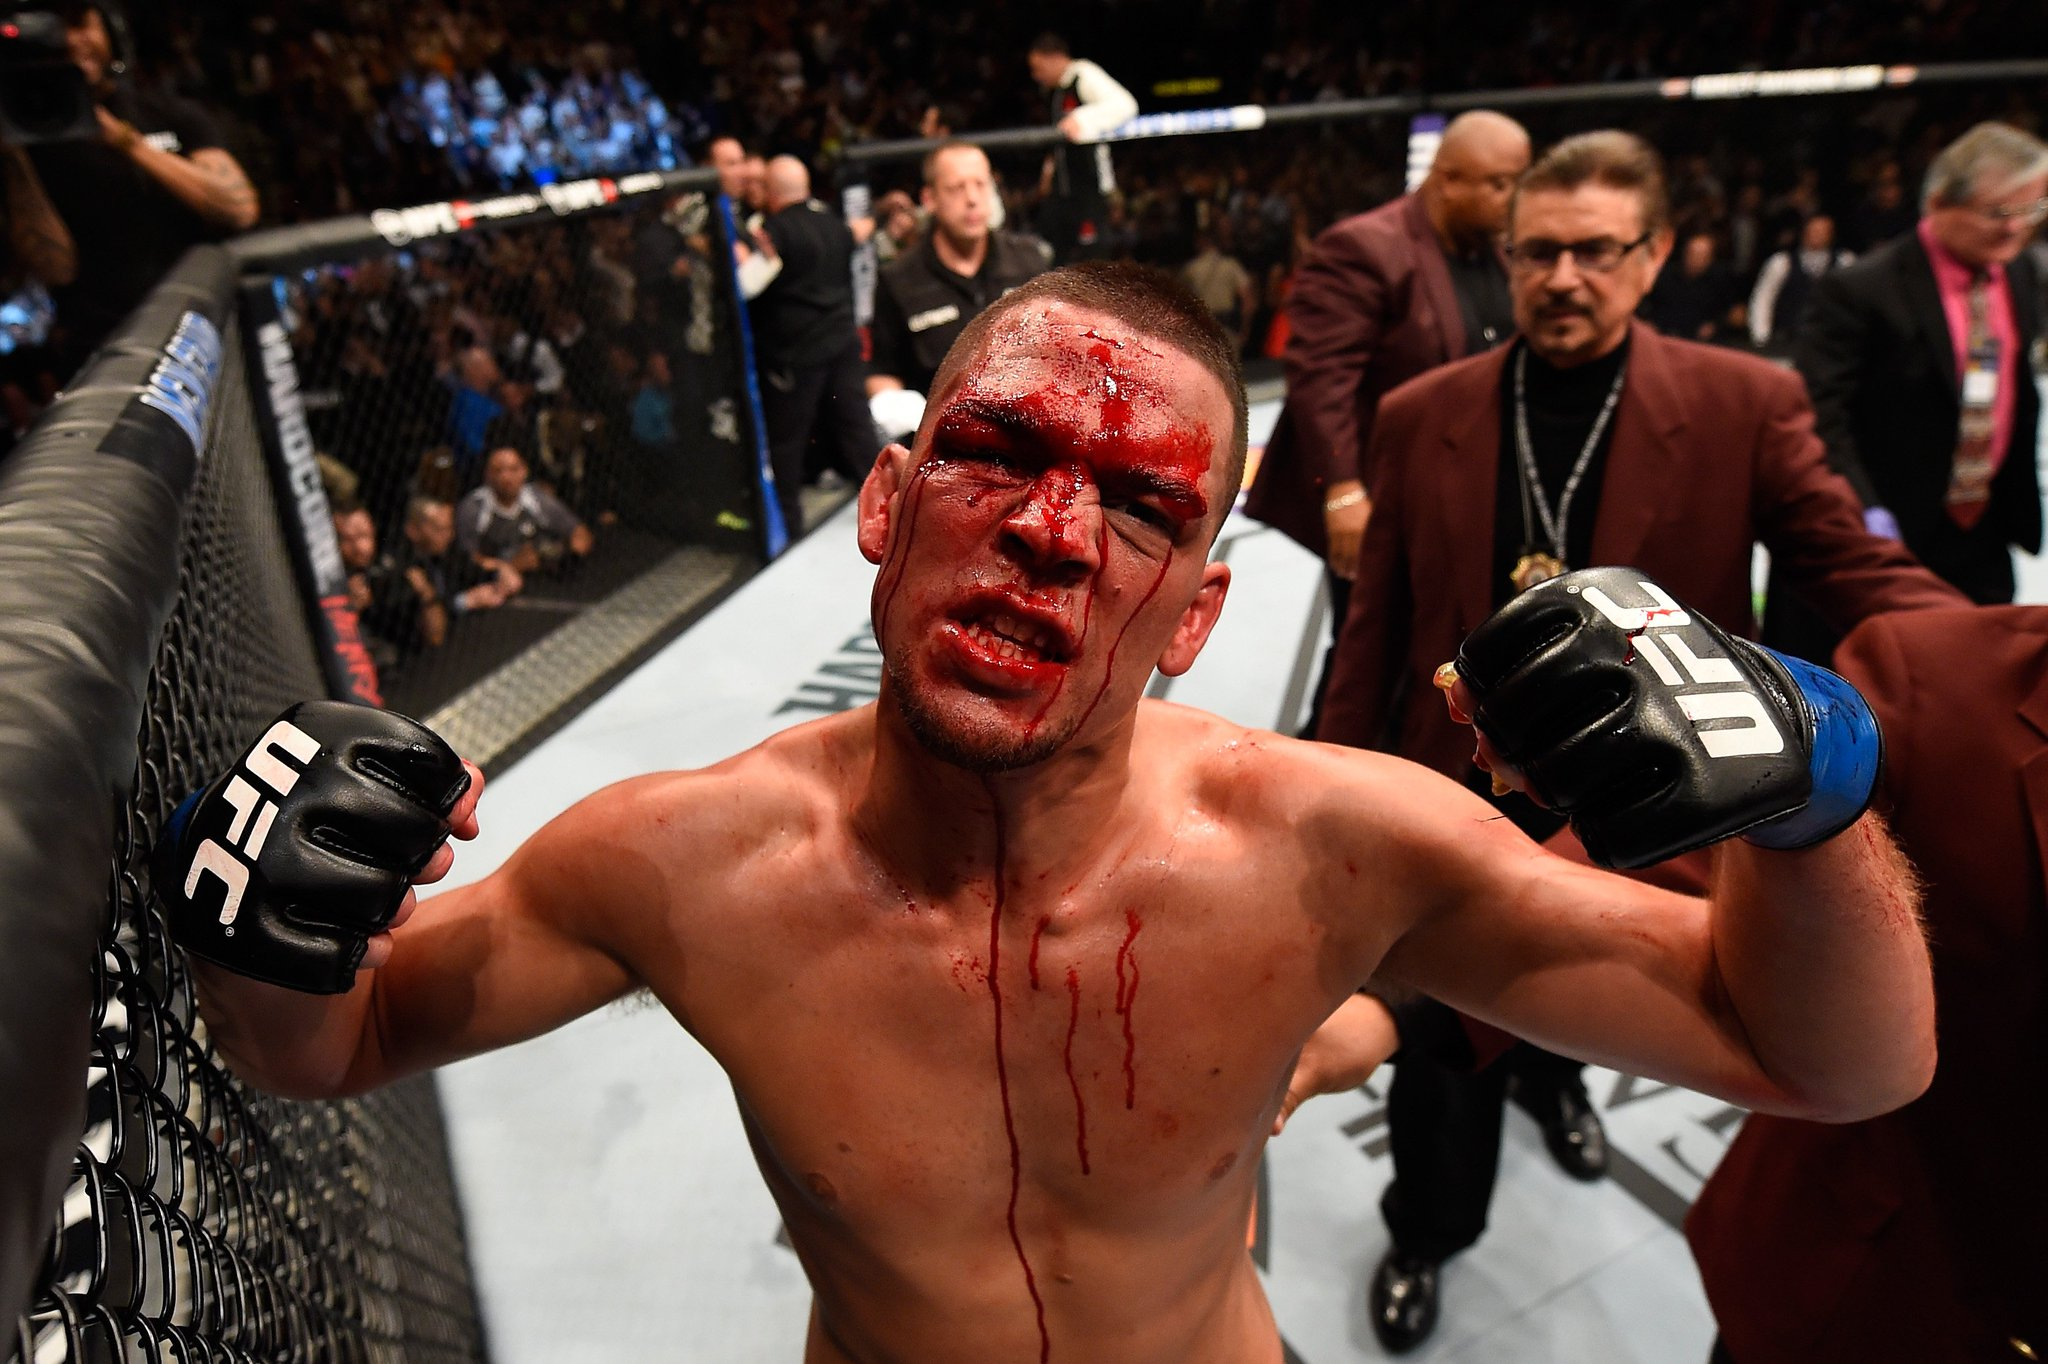 One year ago today, Nate Diaz took down McGregor and made history. https://t.co/dPwuLMzoIo